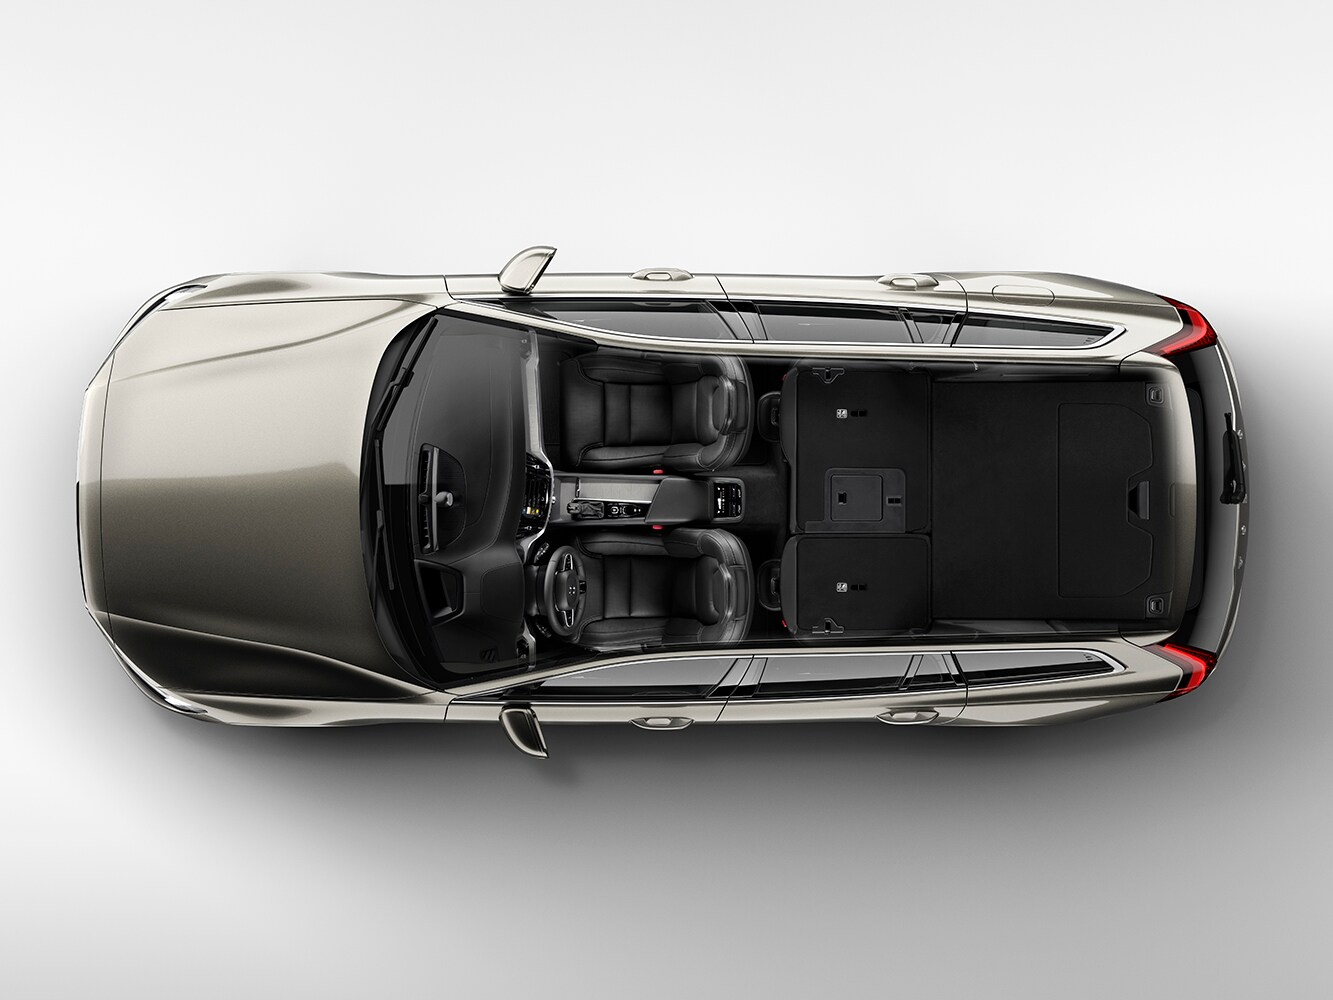 Top down cutaway view of the Volvo V60 showing the interior seat layout from above